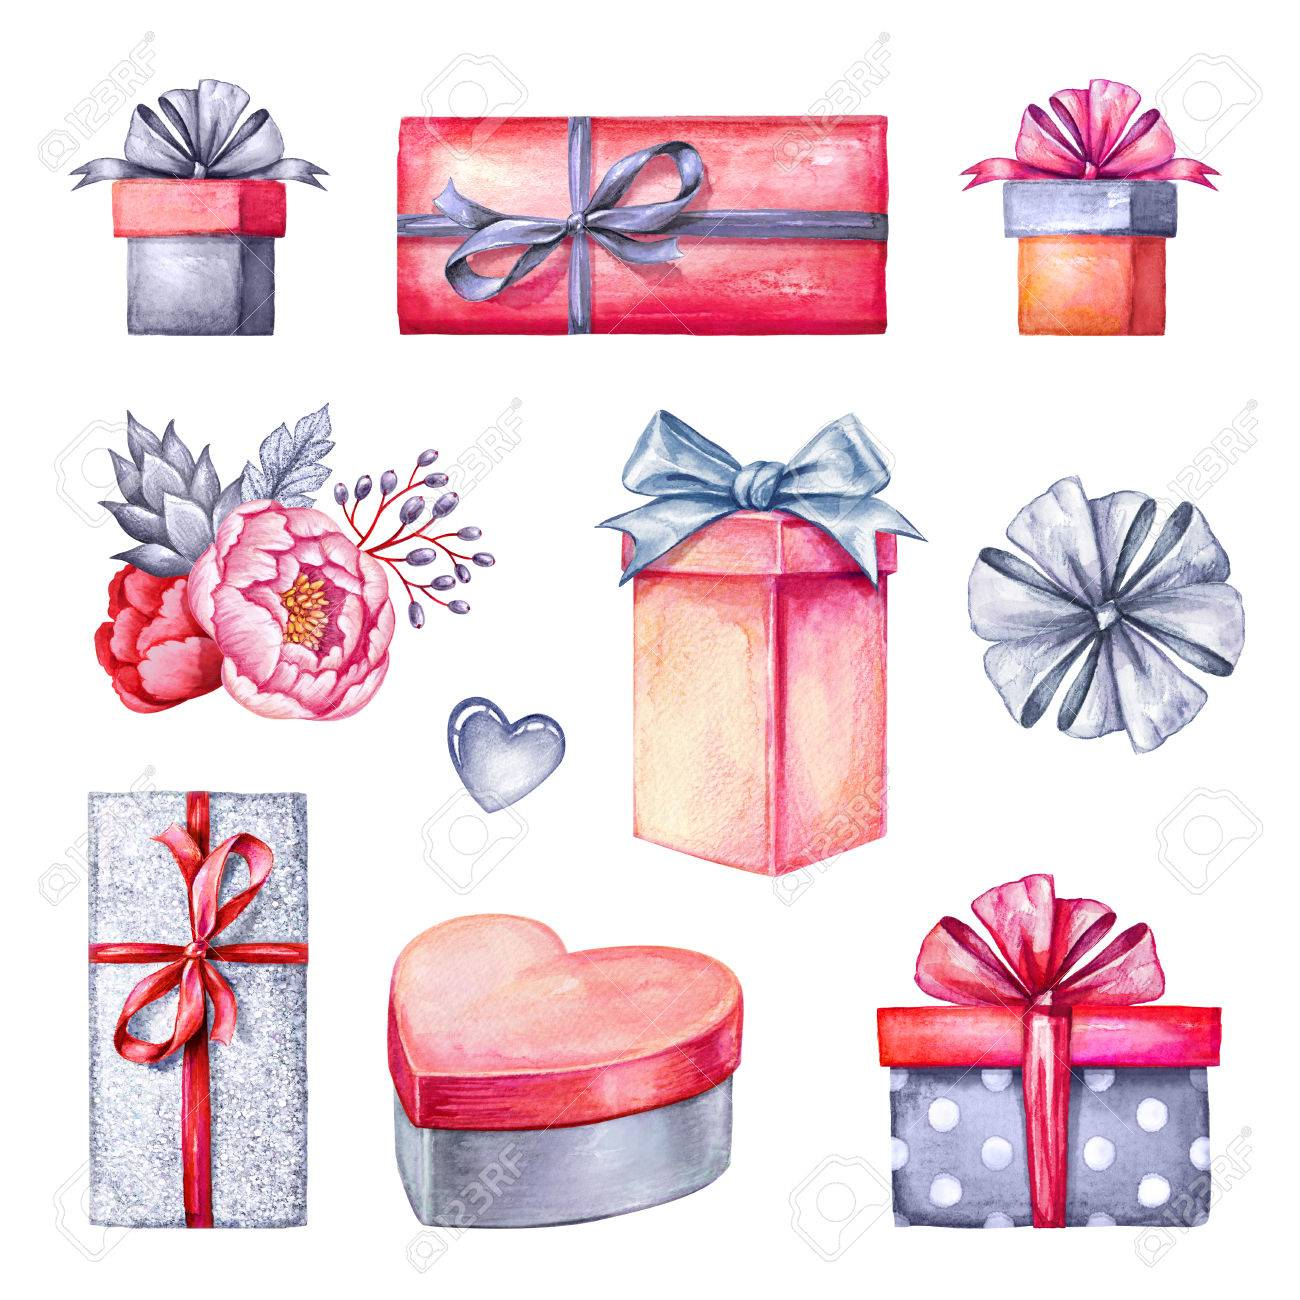 Watercolor illustration gift boxes pile floral decoration stock illustration watercolor illustration gift boxes pile floral decoration valentines day clip art birthday presents design elements isolated on white negle Choice Image